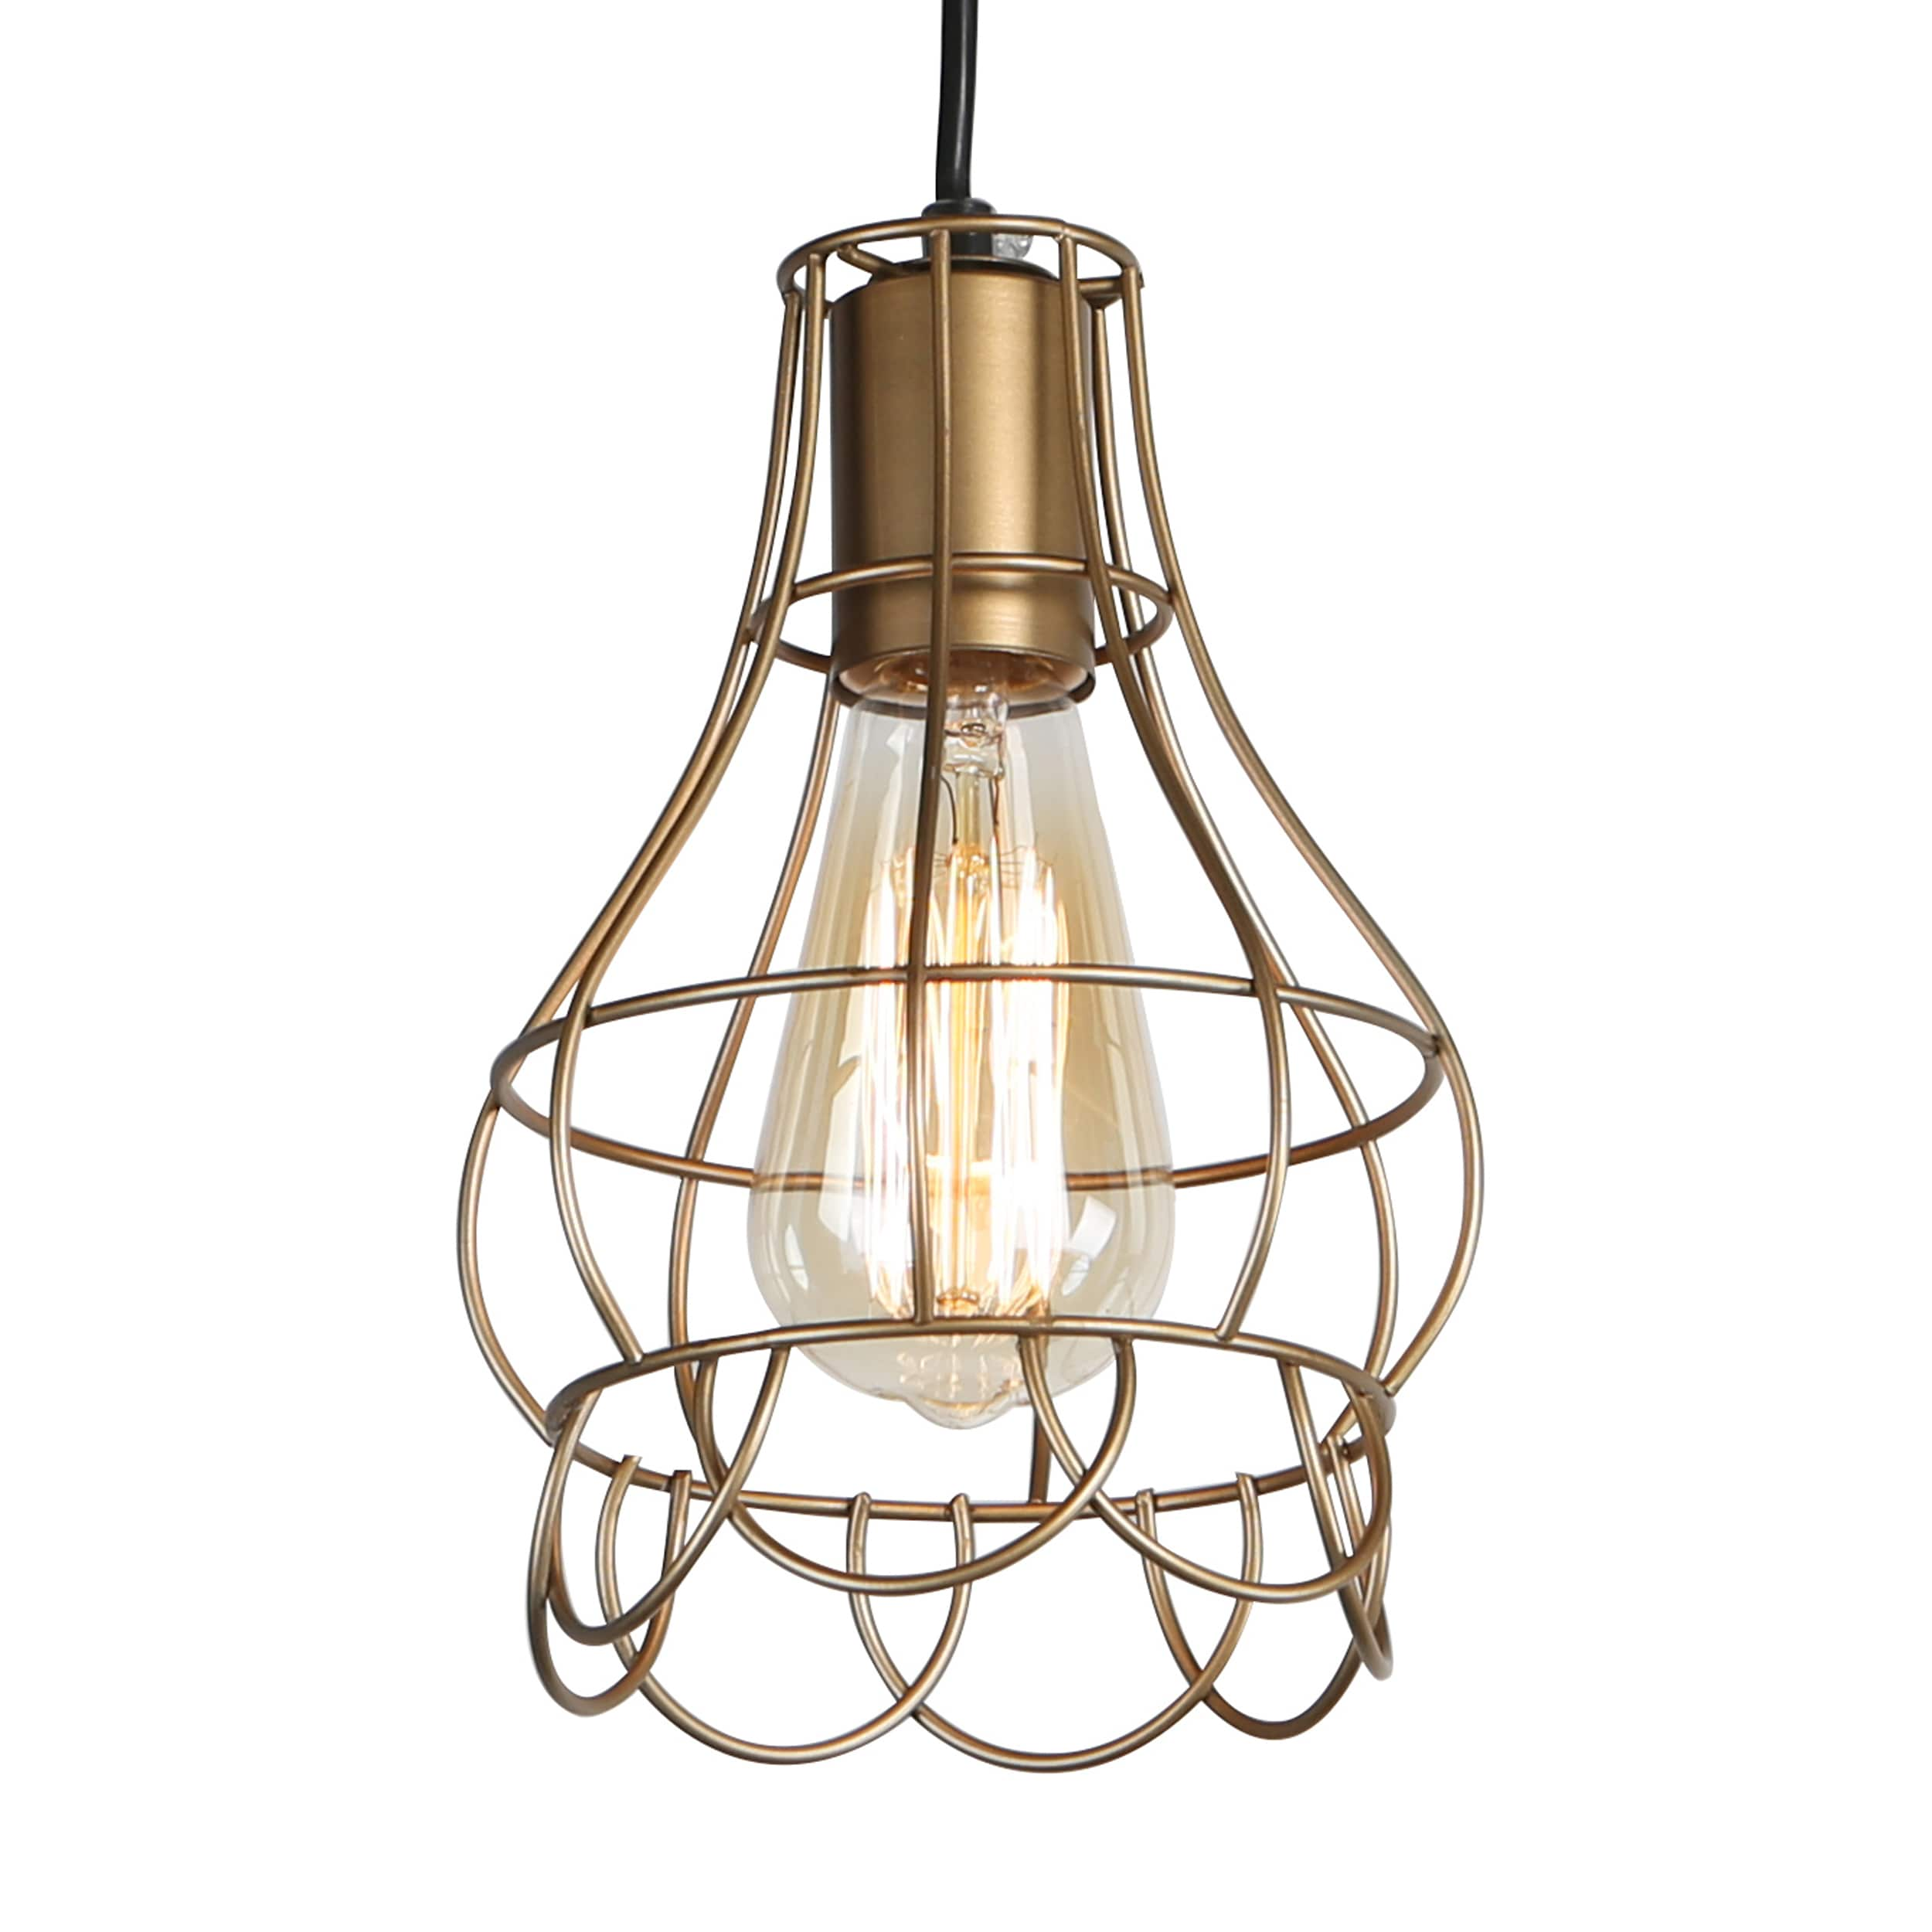 journee lighting. Journee Home \u0027Mattie\u0027 6 In Hard Wired Iron Wire Pendant Light With Included Edison Bulb - Free Shipping Today Overstock 24186467 Lighting O